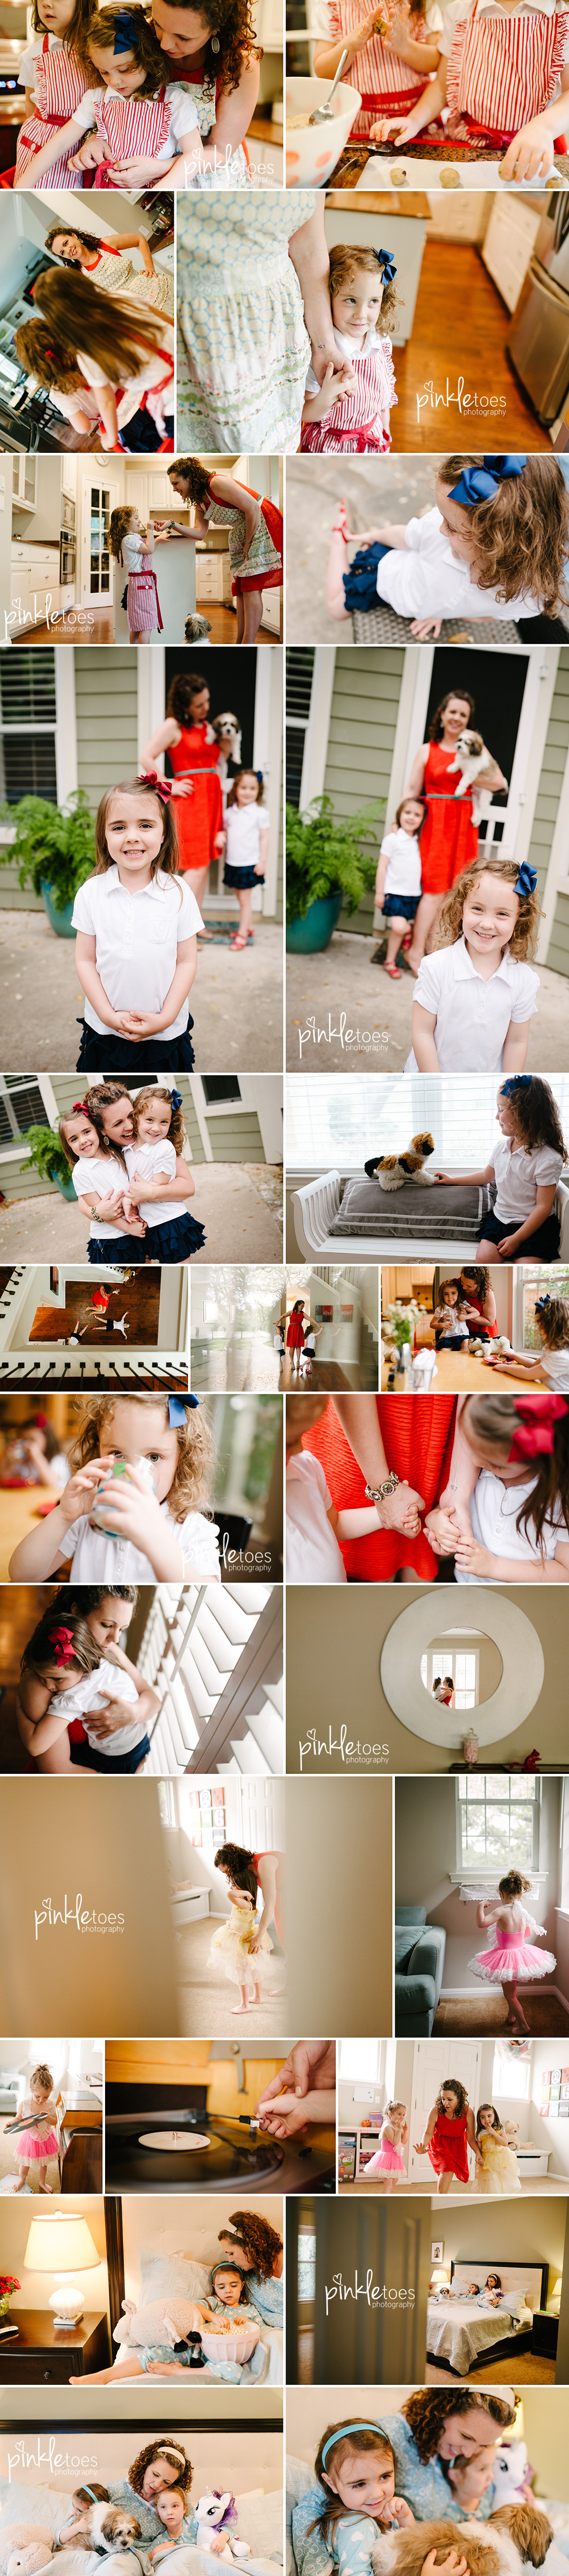 kg-authentic-austin-lifestyle-photography-kids-at-home-pinkle-toes